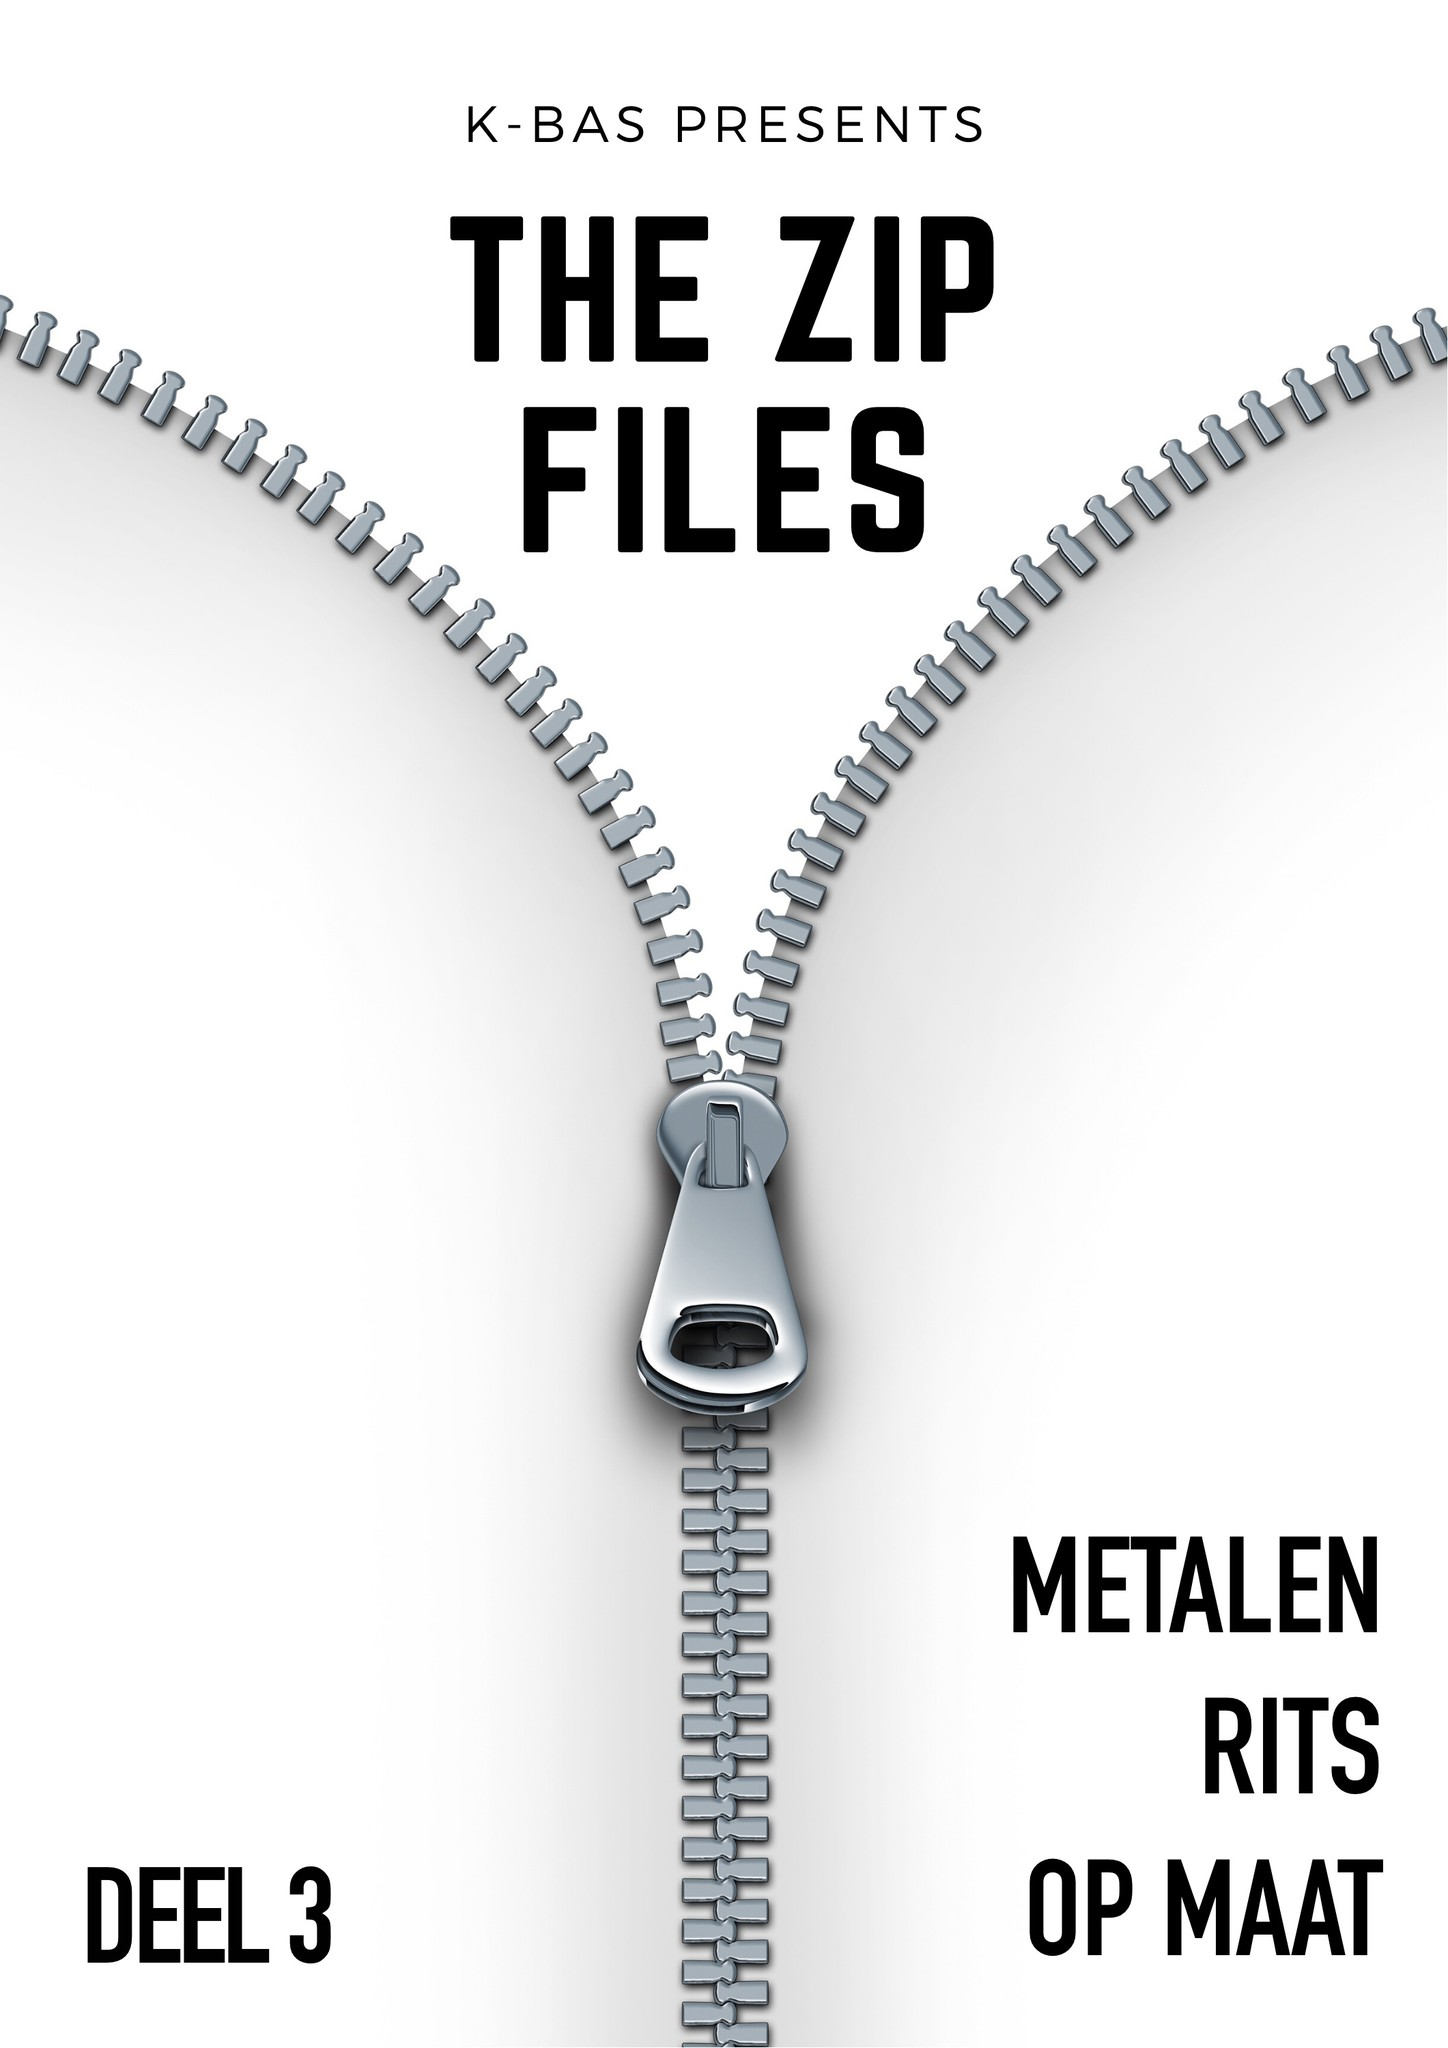 The zip files: deel 3 - metalen rits op maat